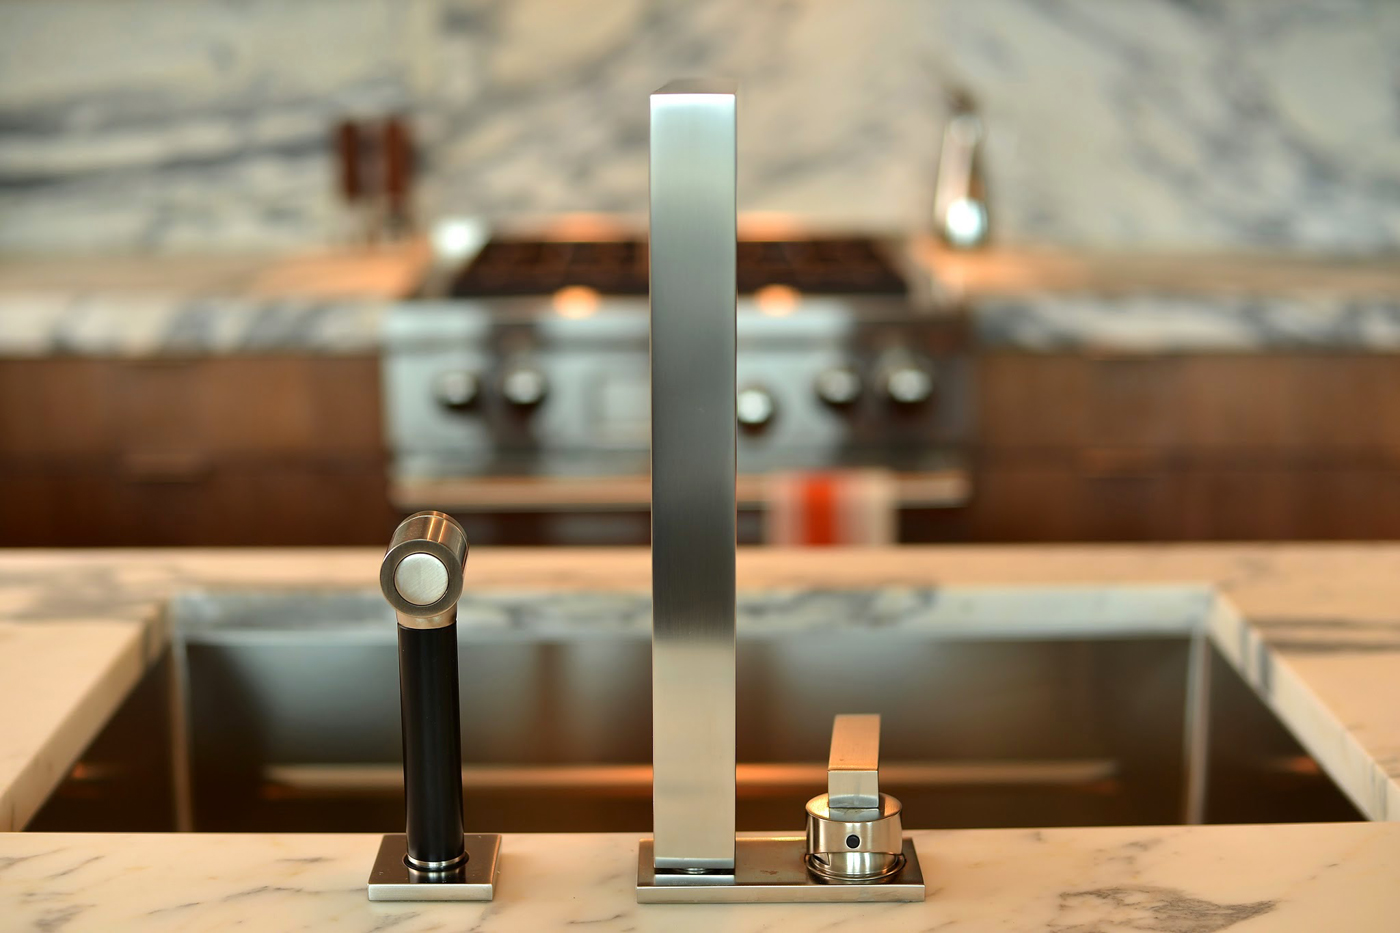 Sleek modern steel finish kitchen faucet detail | Savage Interior Design